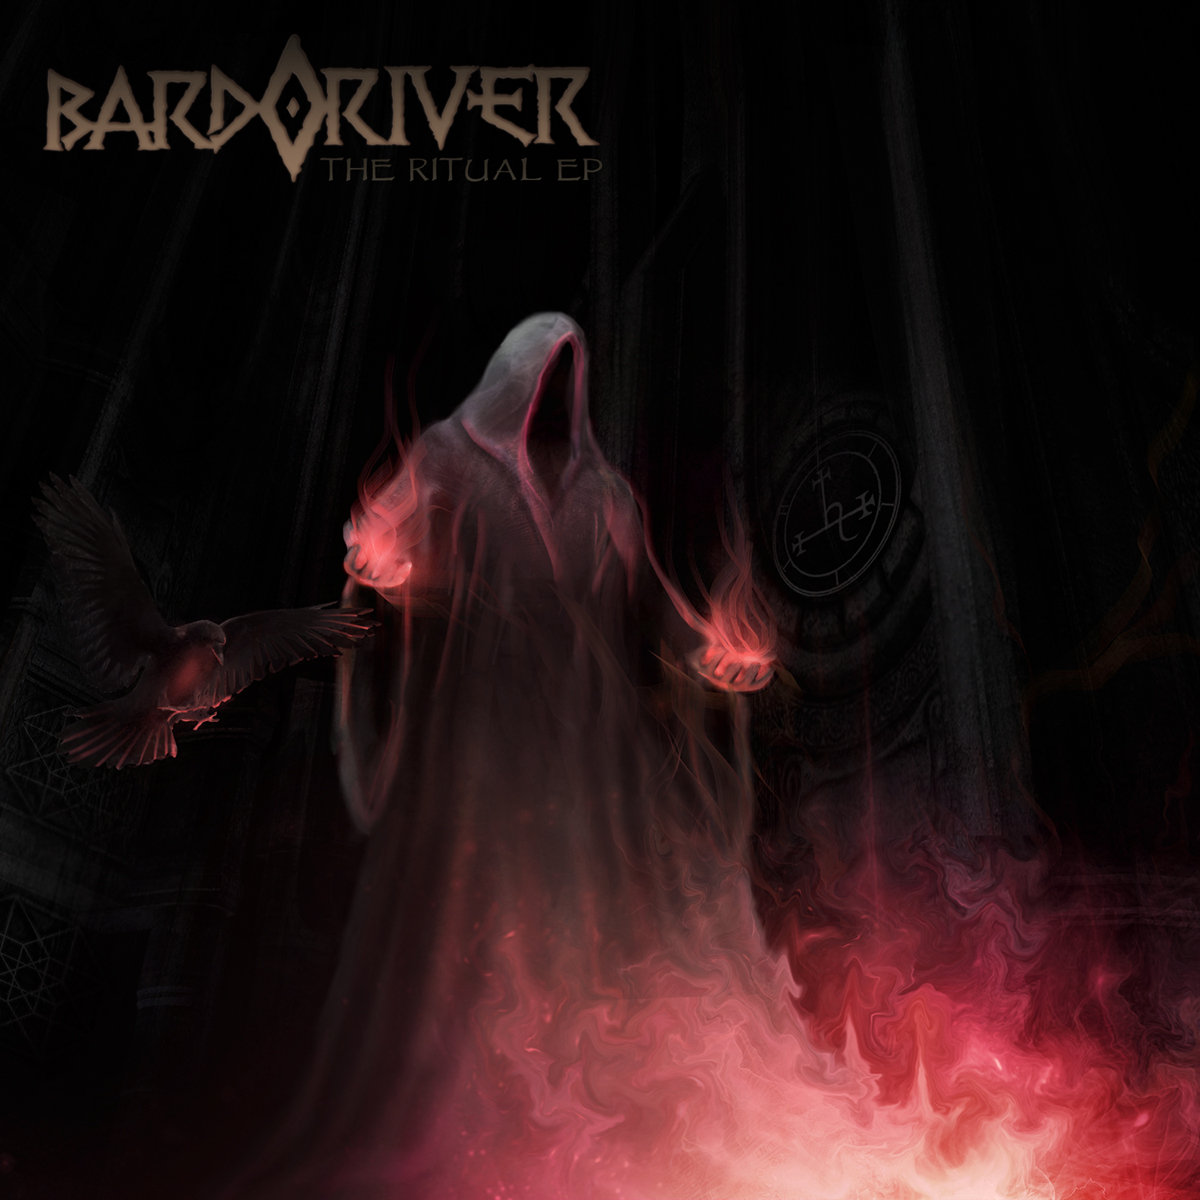 Bardo River - The Ritual